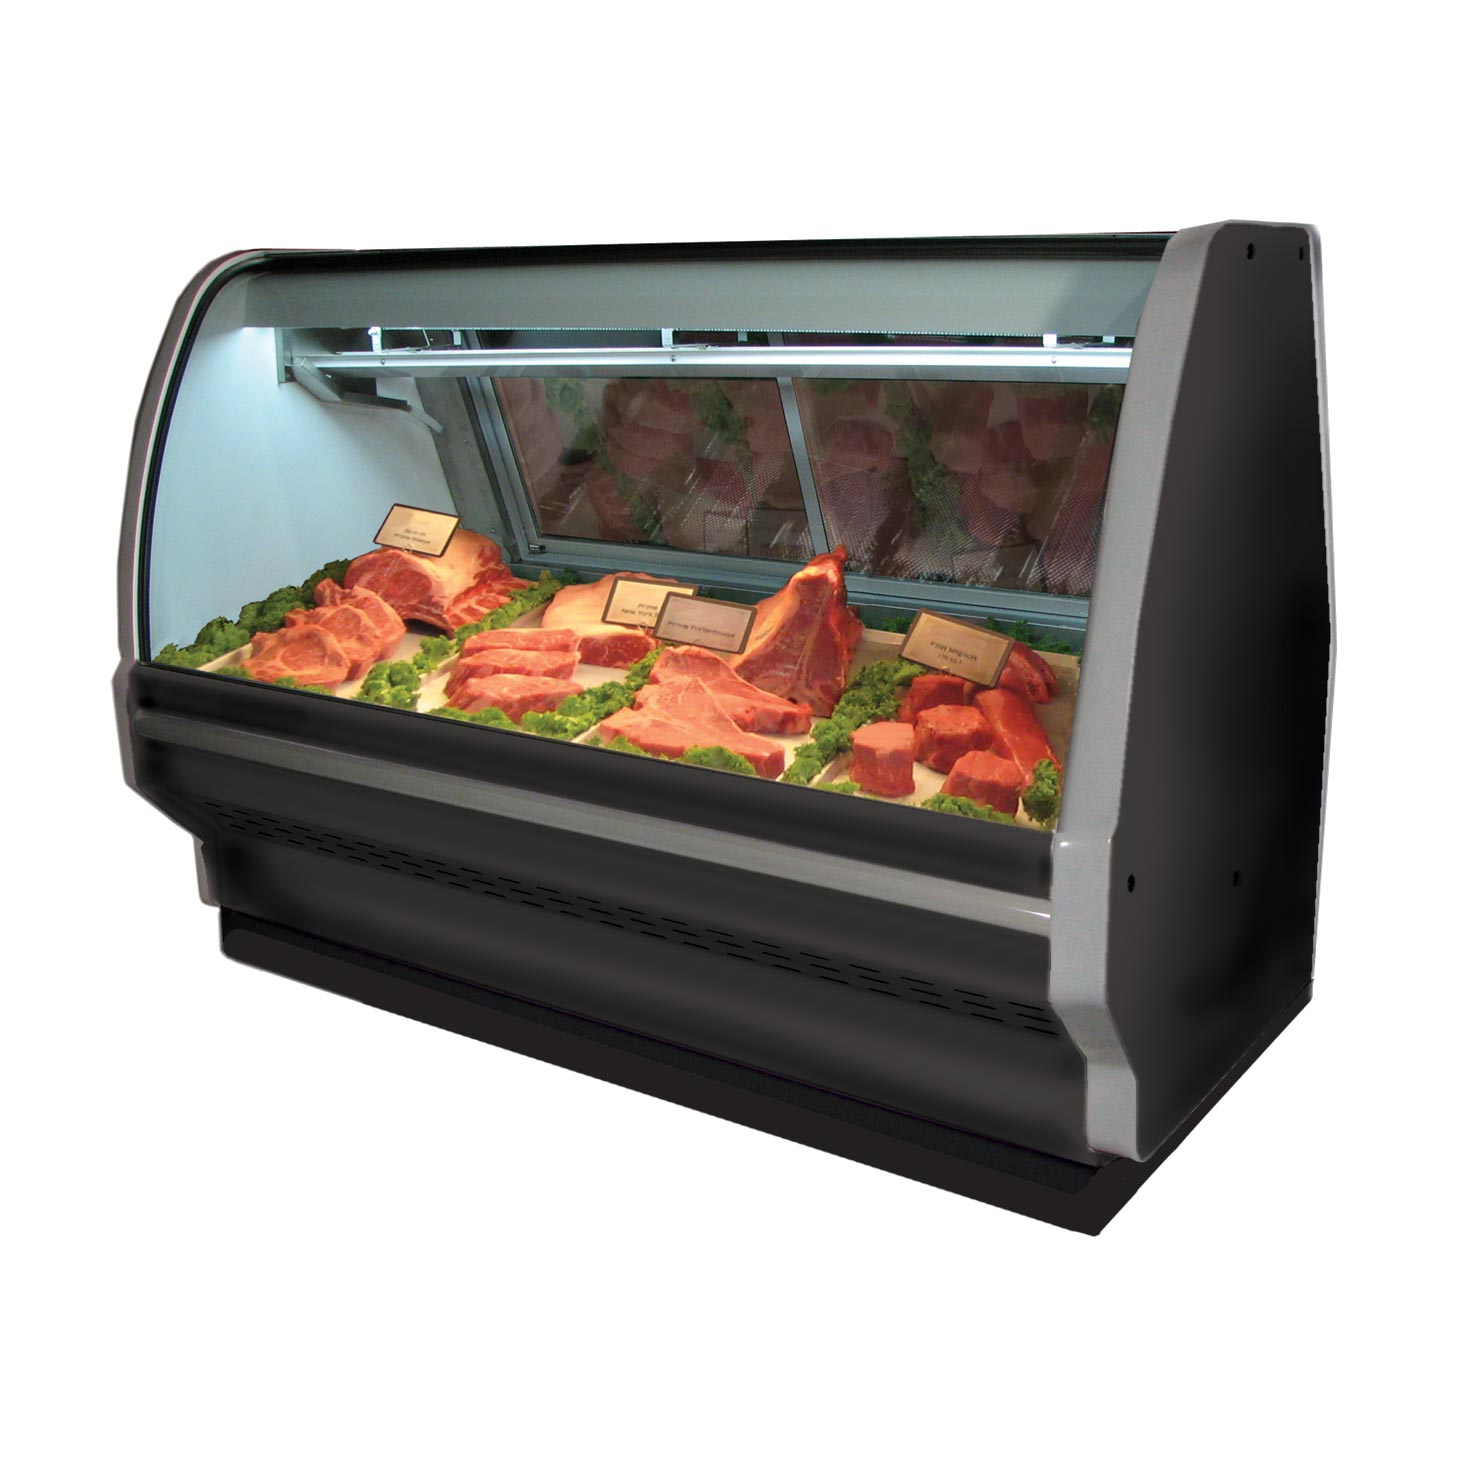 Howard-McCray R-CMS40E-4C-BE-LED display case, red meat deli